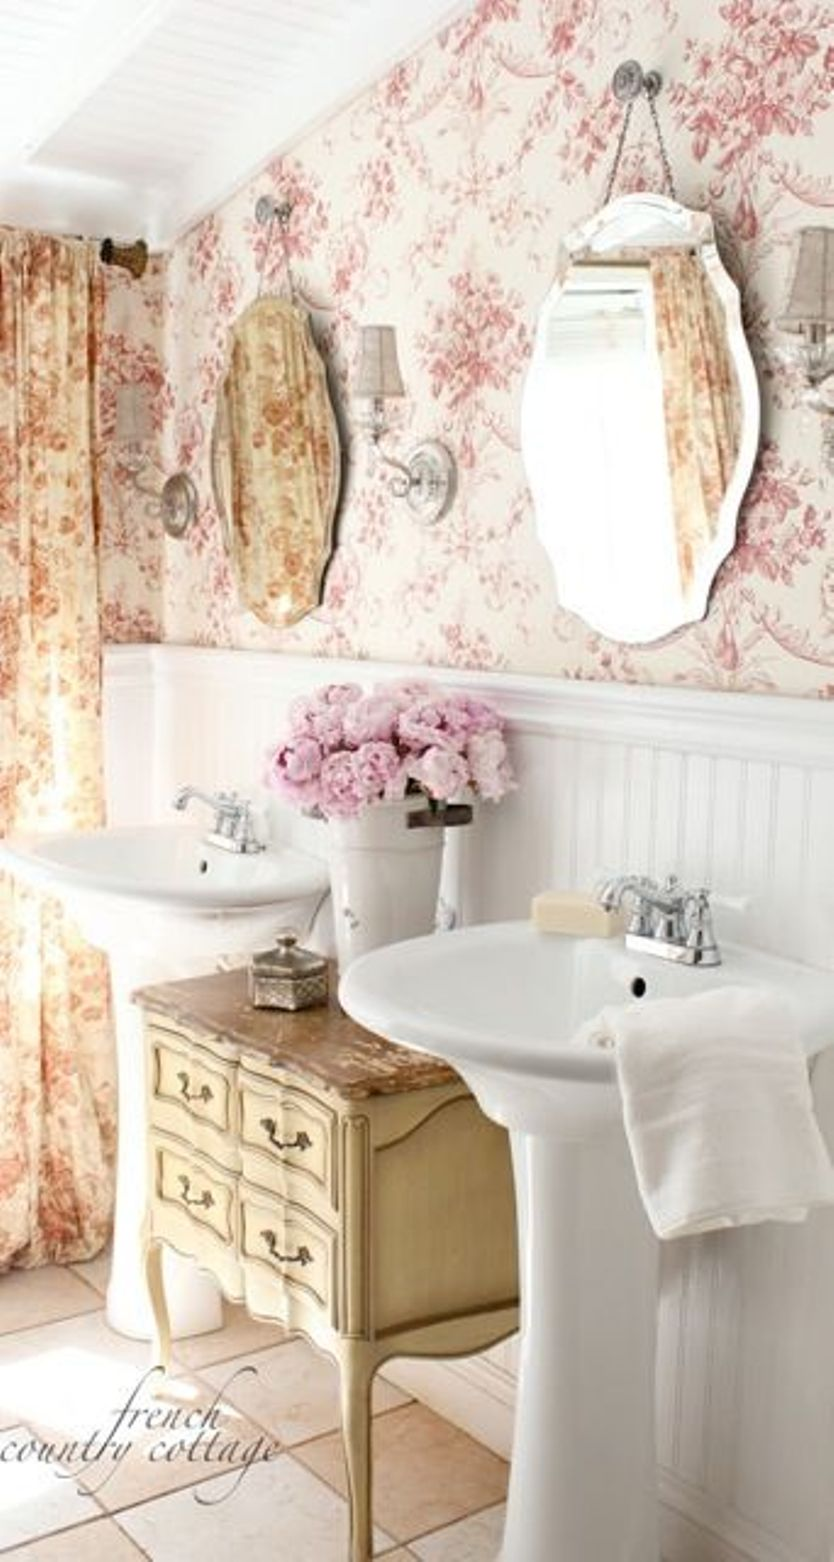 small-bathroom-makeovers-with-wainscoting-and-wallpaper-and-vintage-cabinet-between-two-pedestal-sinks-and-mirrors-and-flower-style-curtain